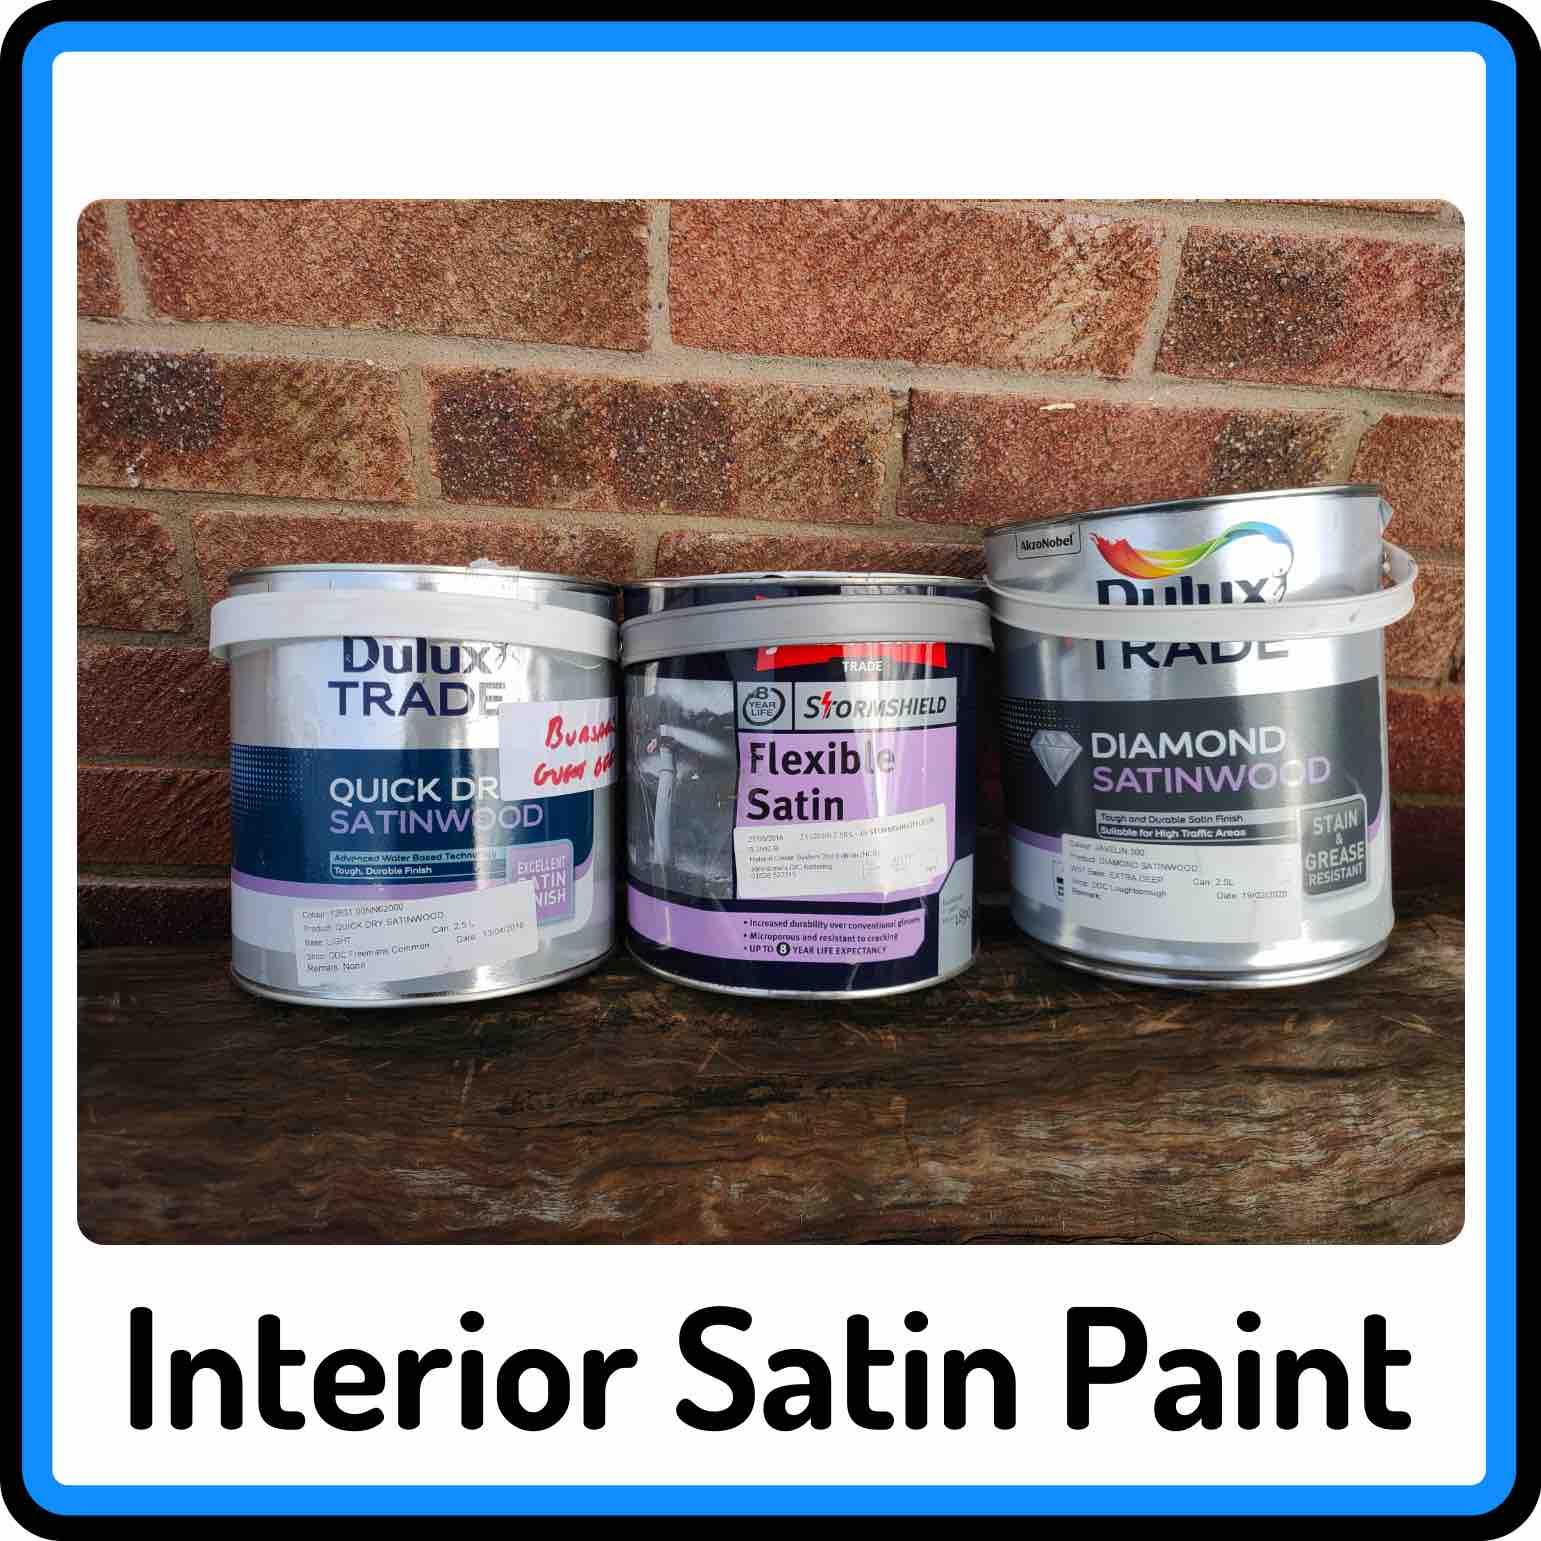 View our selection of Interior Satin / Satinwood Paints